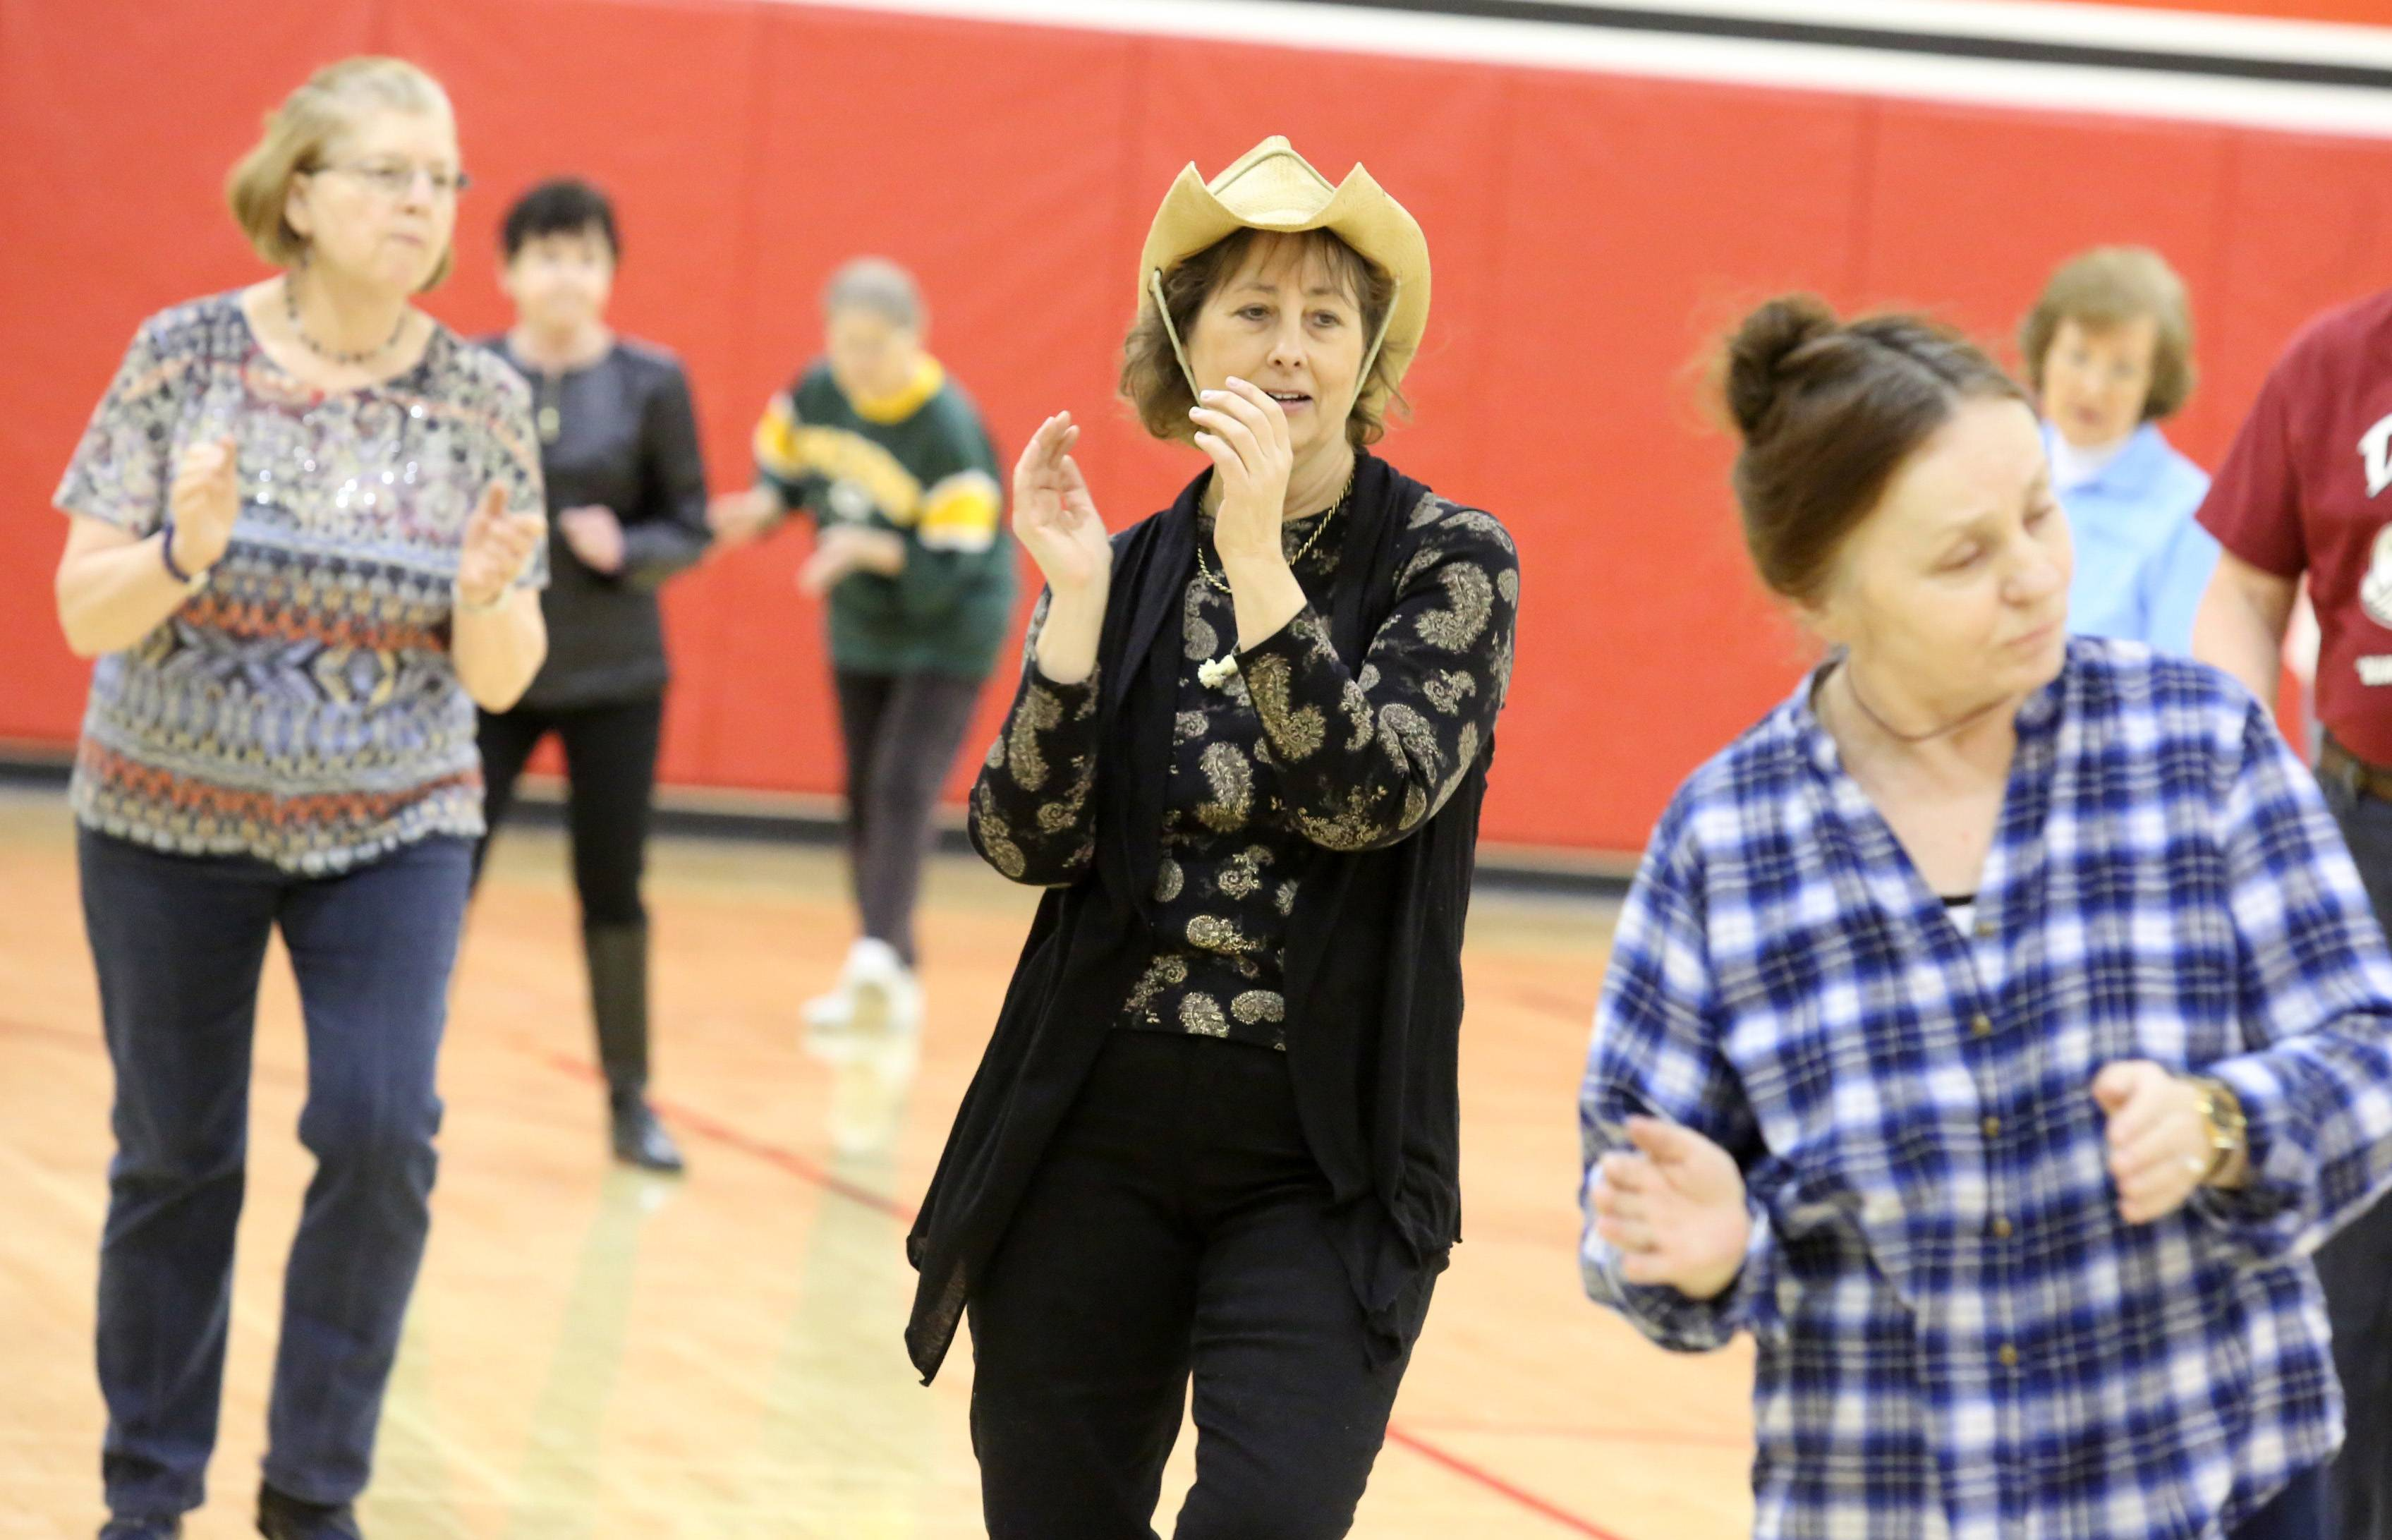 Susan Moore of Antioch, center, and 35 others participated in line dancing at Fox Lake Business & Family Expo at Grant High School on Saturday in Fox Lake.